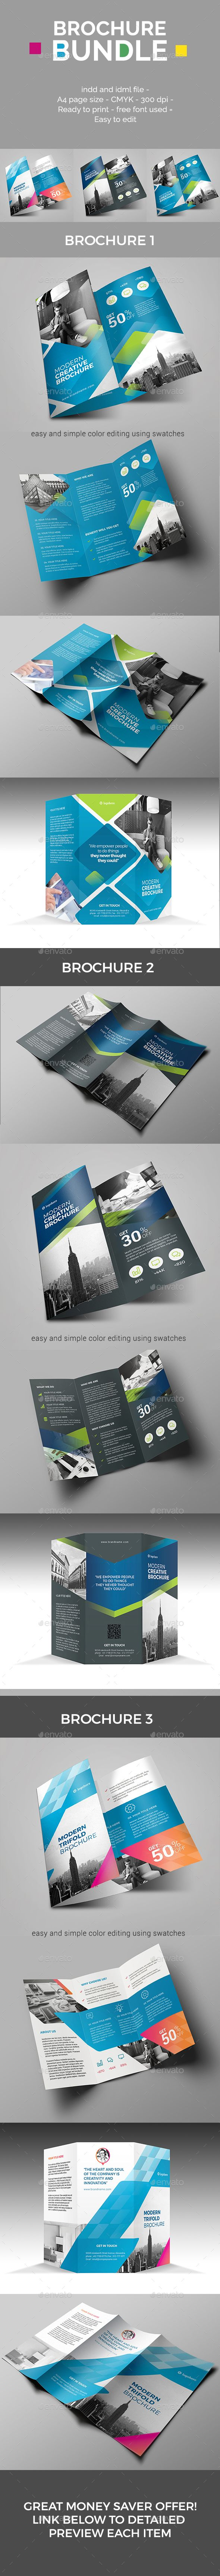 #Trifold Brochure #Bundle - #Corporate #Brochures. Package of 3 different styled trifold brochures.Each item in modern, creative, fully editable and easy to customize Template. great money saver offer!